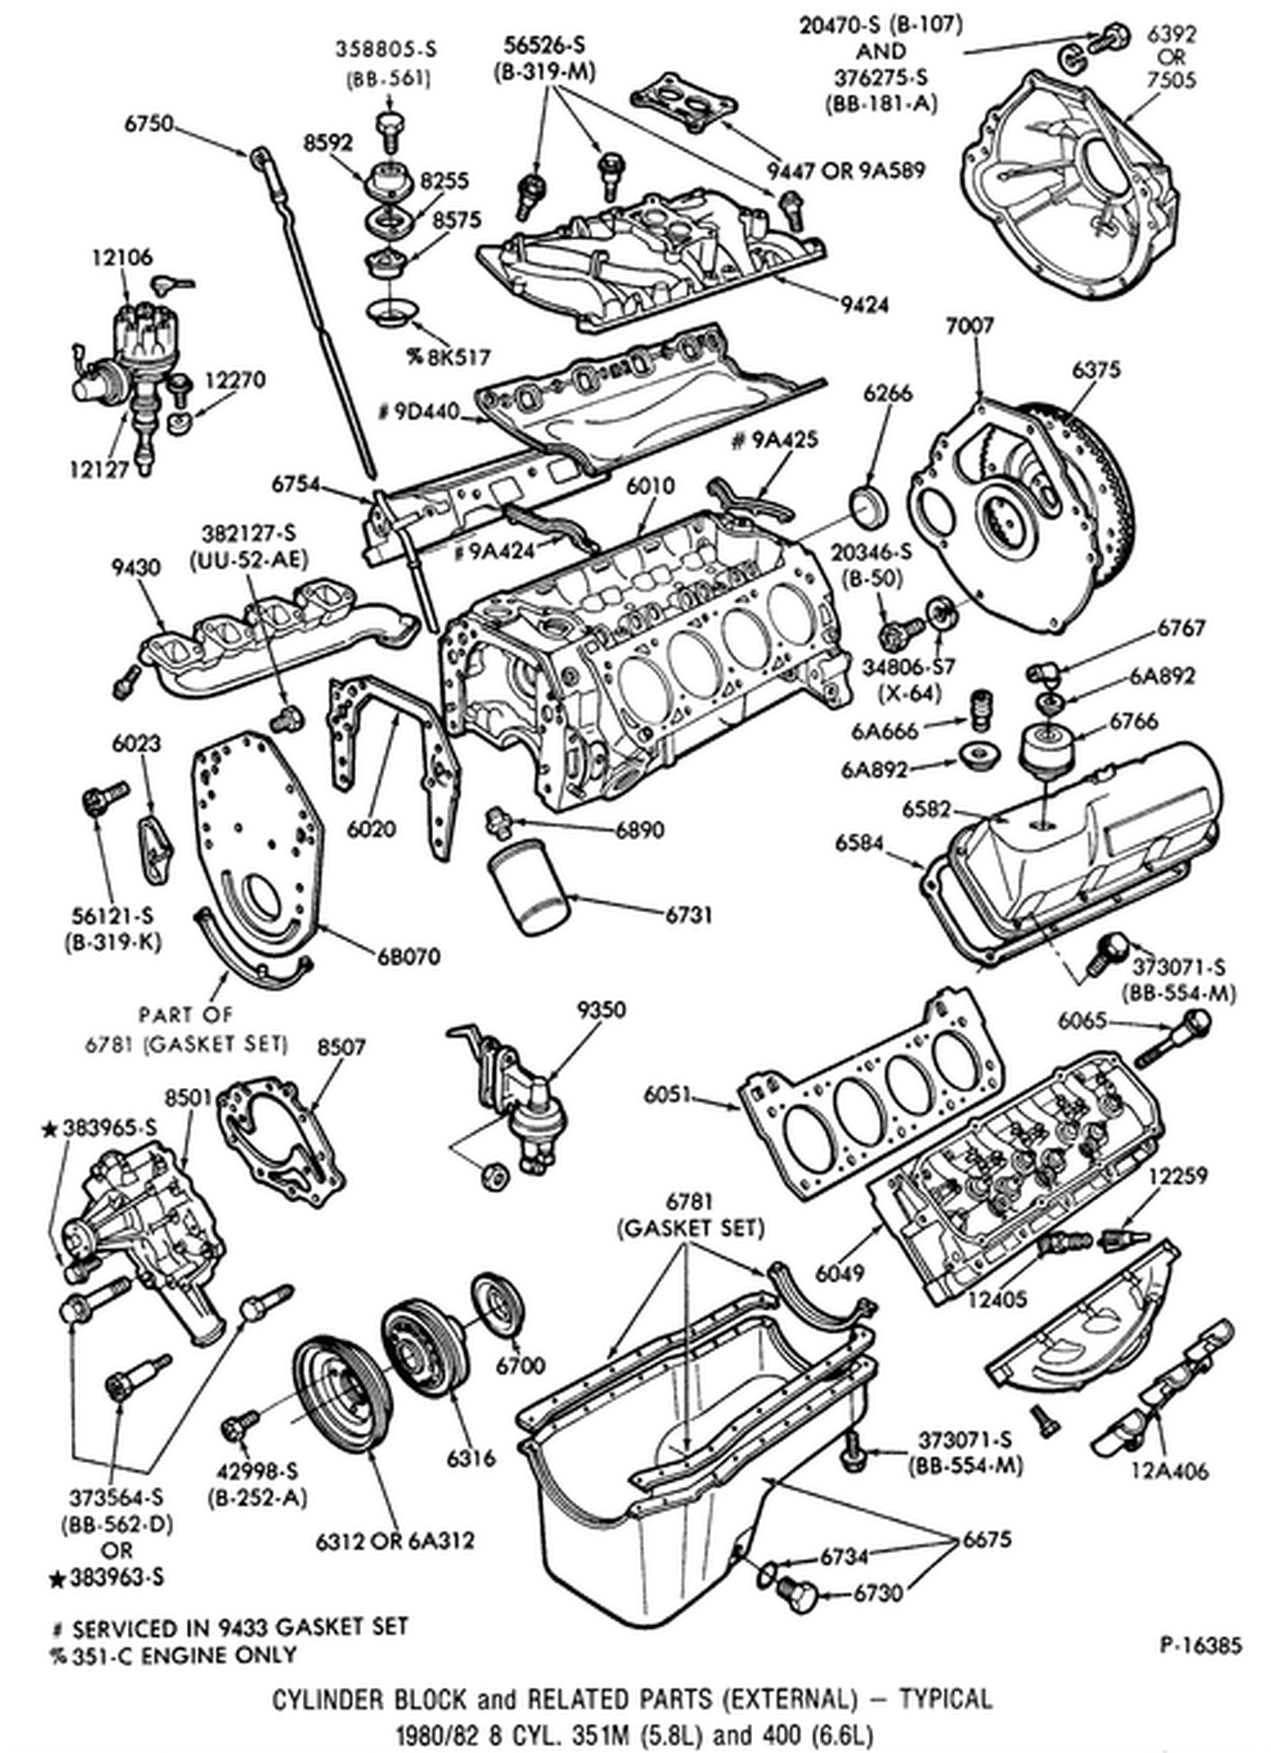 Ford's 335 Series engines use a bit different oiling system than most other  engines, and consequently many have low oil pressure - especially at idle.